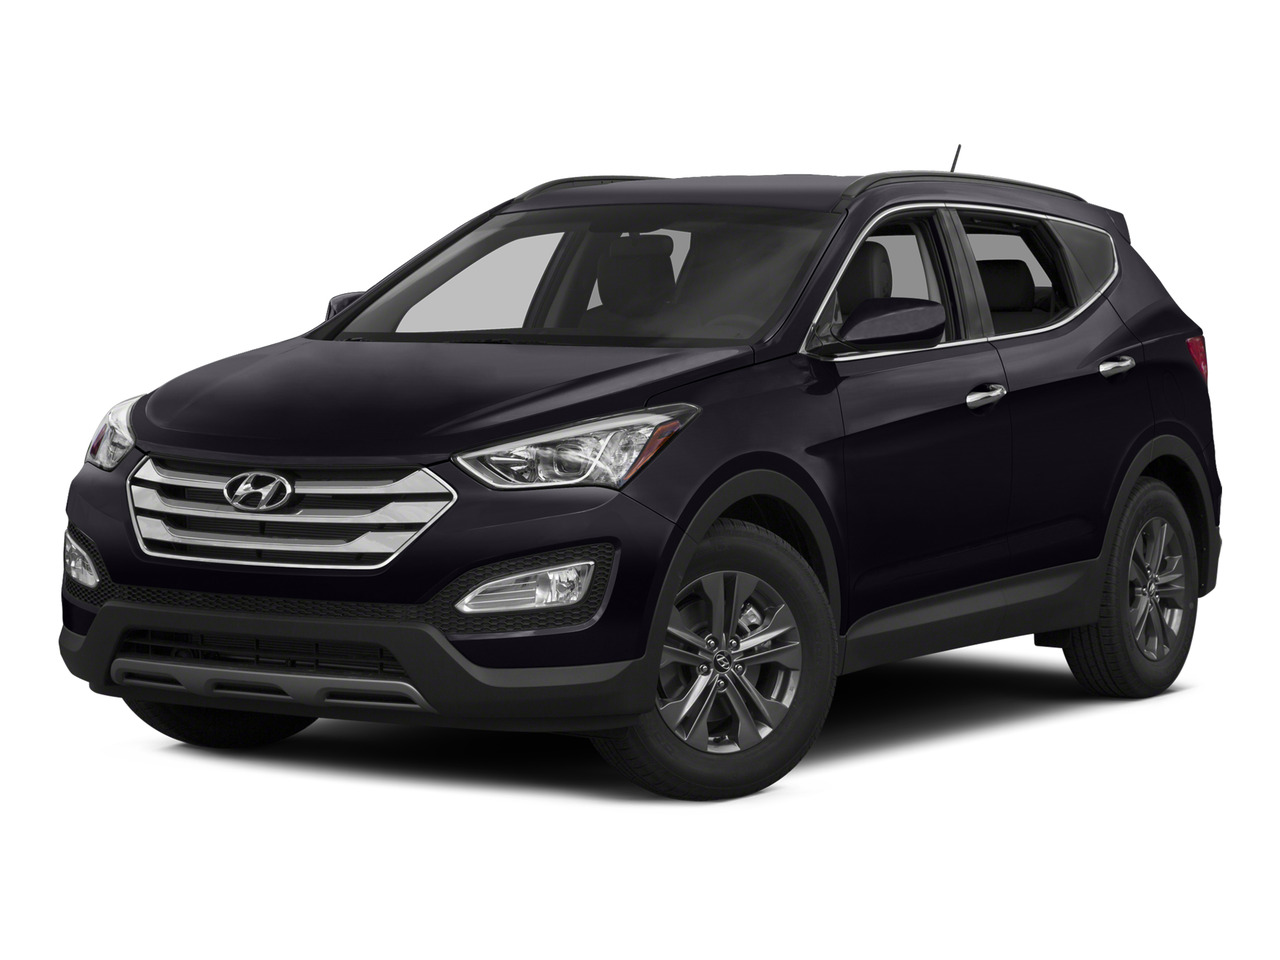 Twilight Black 2015 Hyundai Santa Fe Sport 2.4L SUV Indian Trail NC